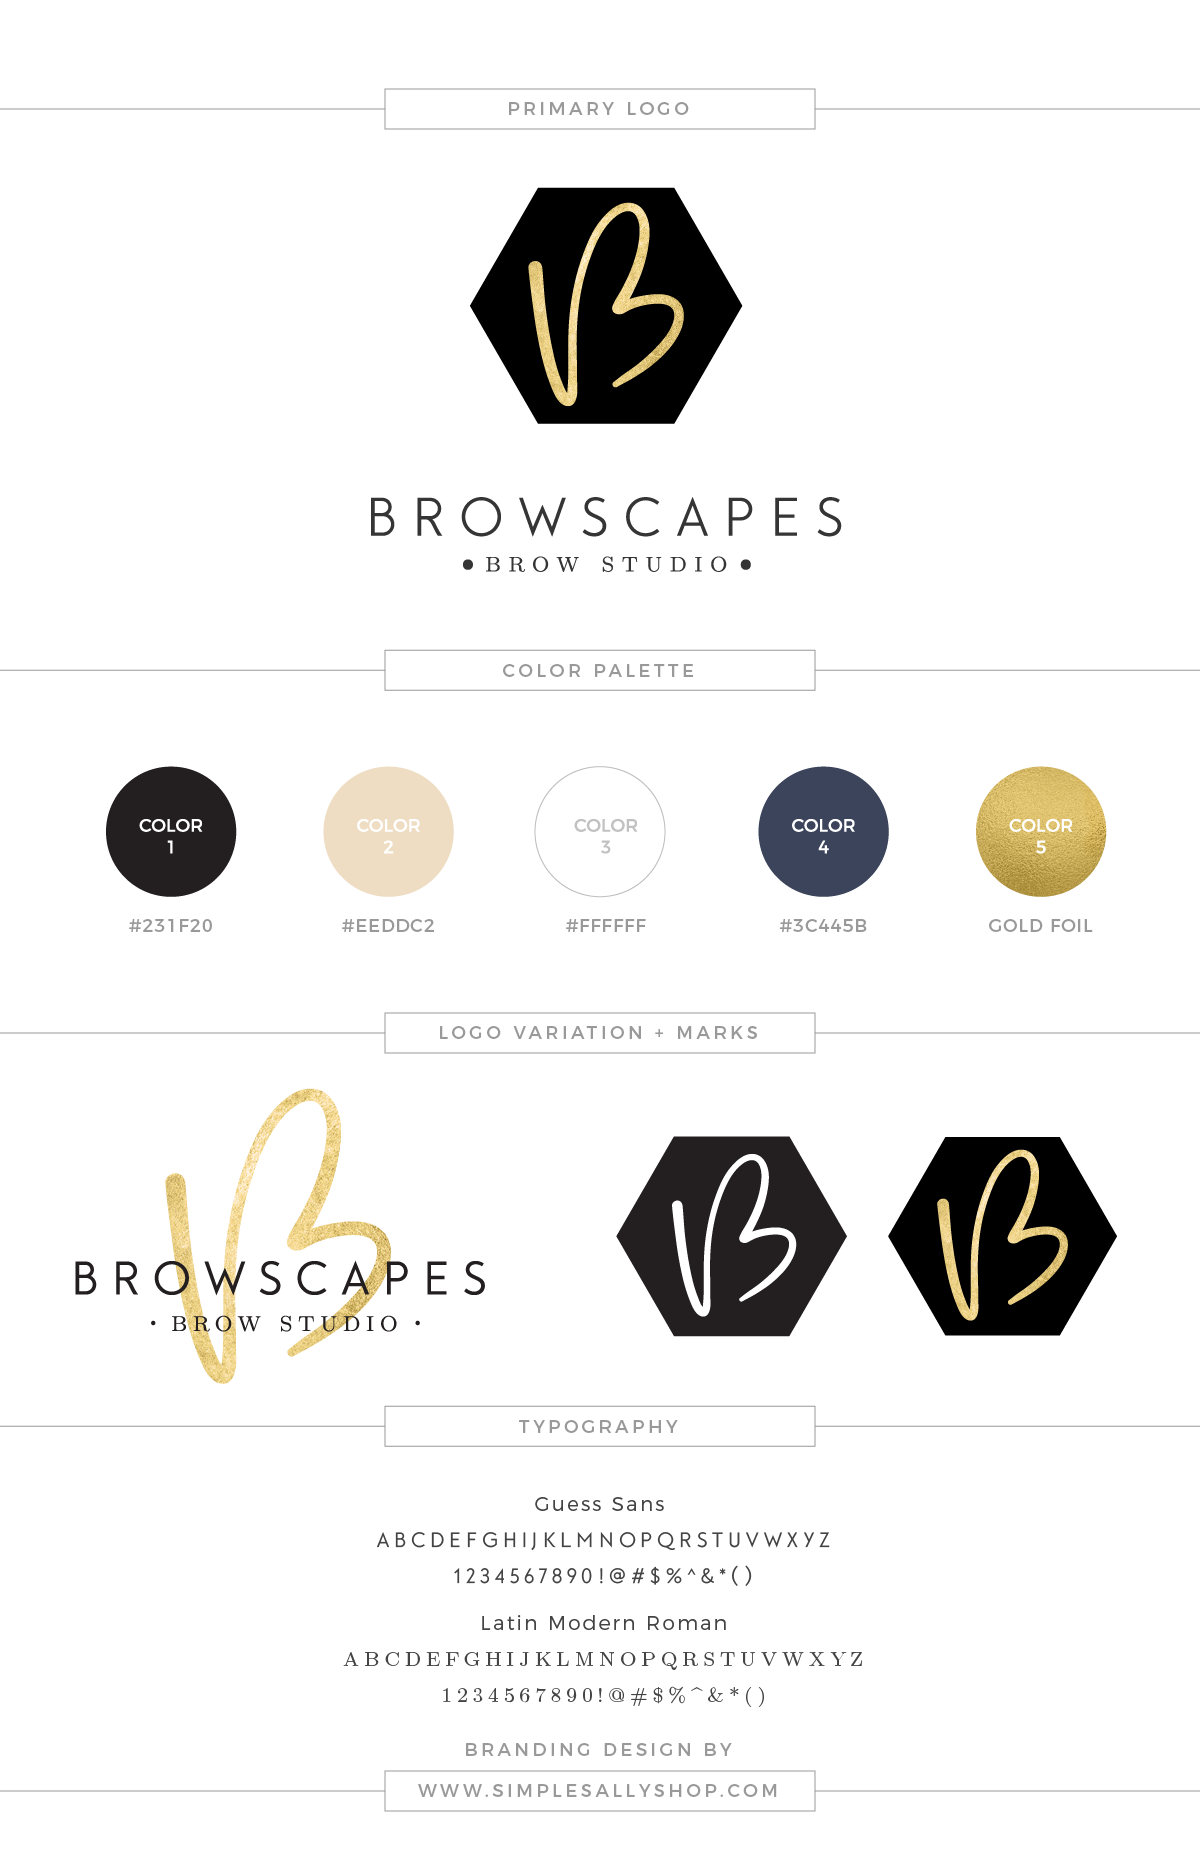 Logo Design by Simple Sally | #brows #simple #logo #simplesally